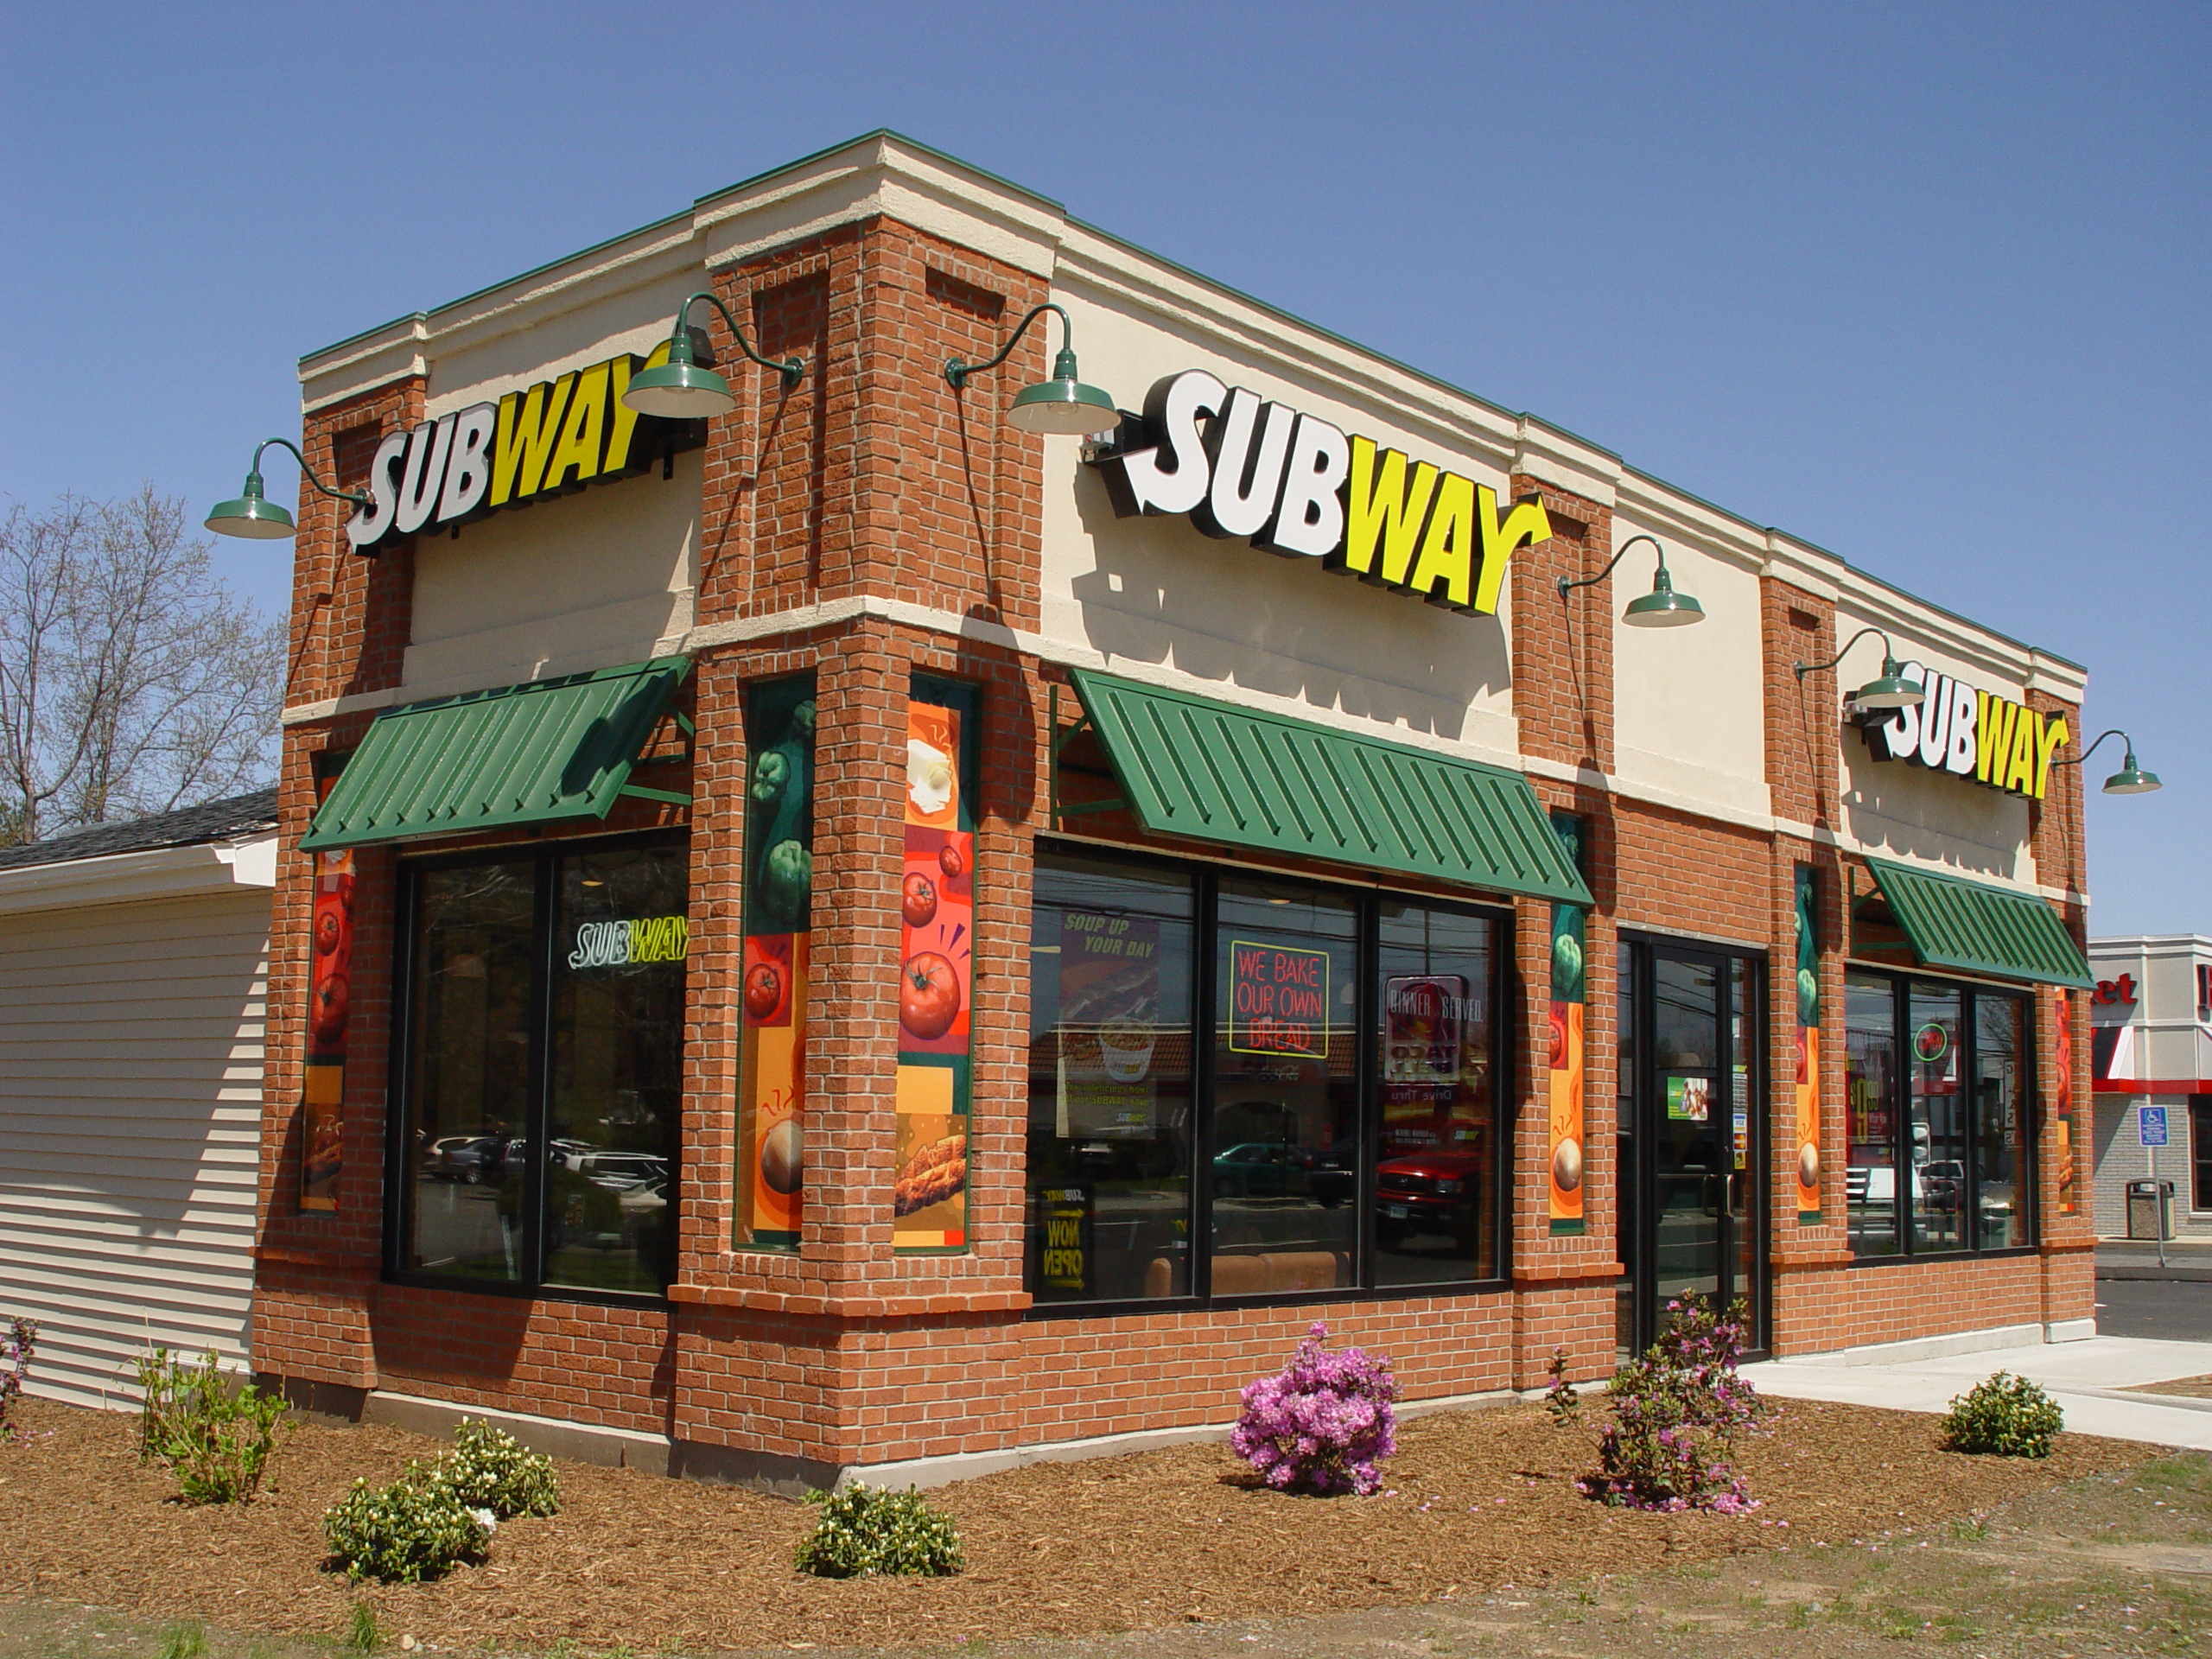 Subway, Mansfield AR